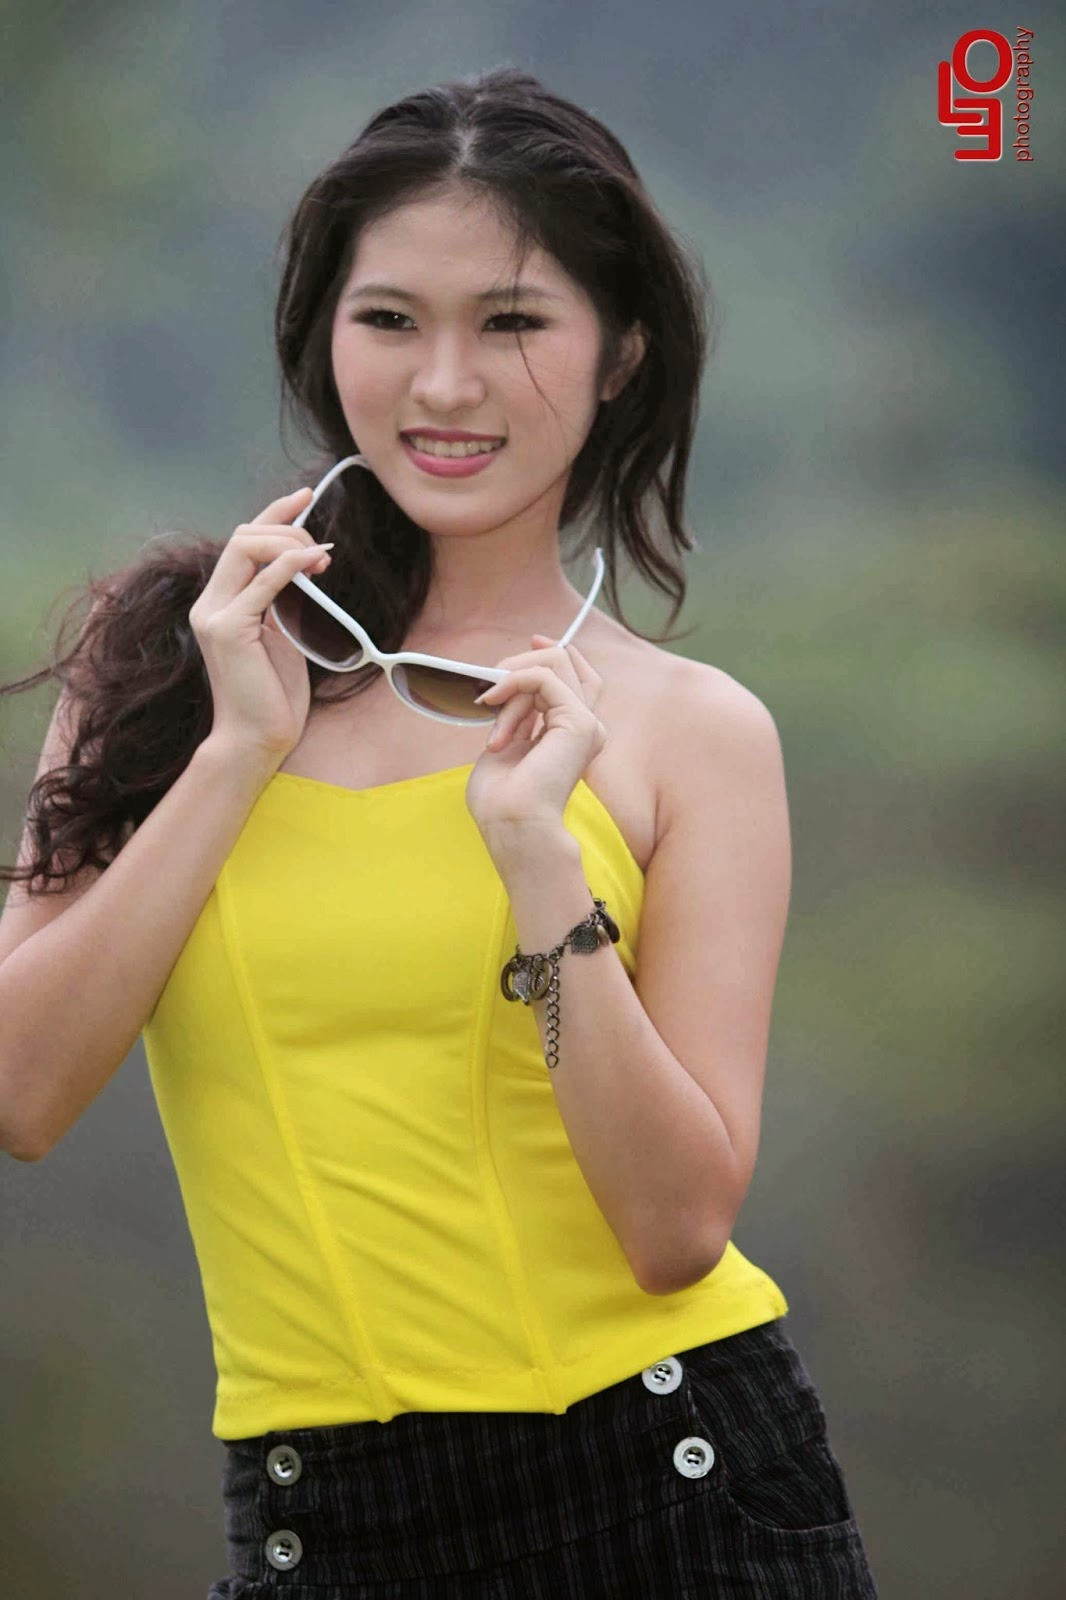 Michelle Ferd Photoshoot Collections in Yellow Beauty